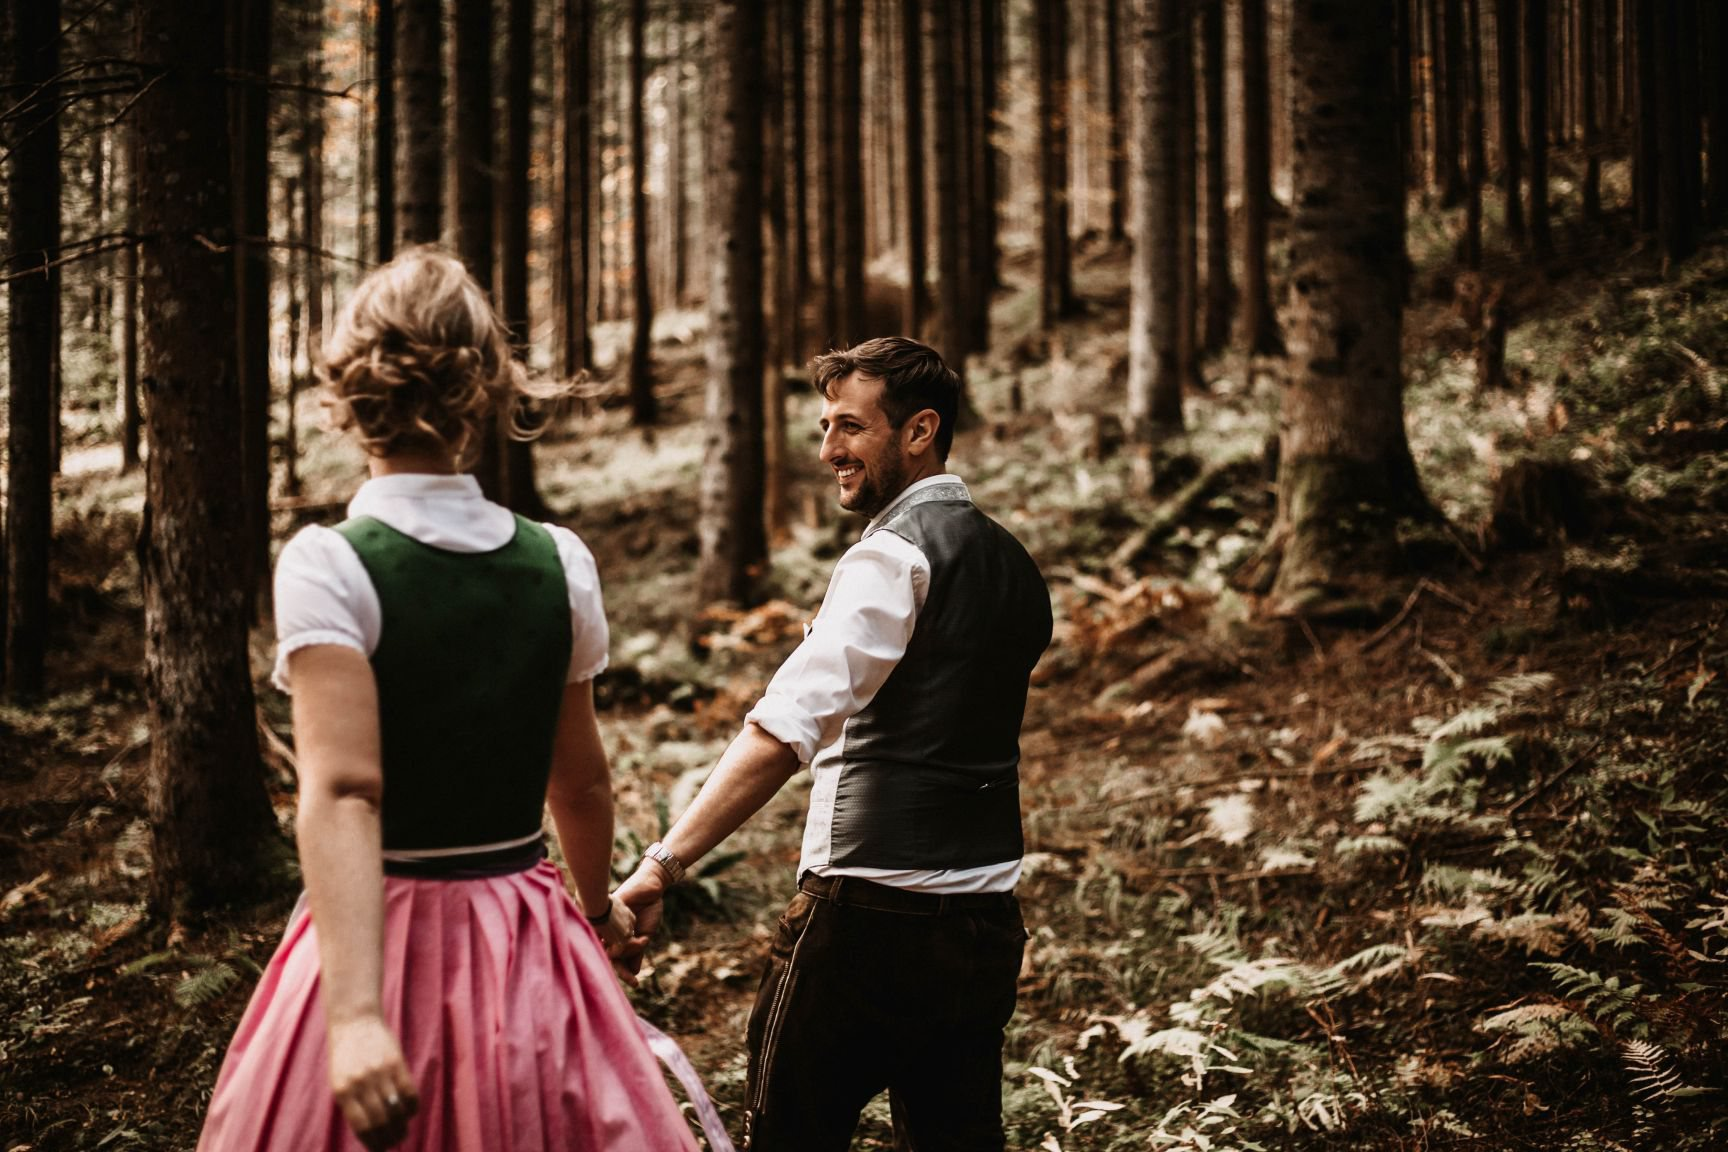 Lotte-Barry-photosession-in-Mountain-5